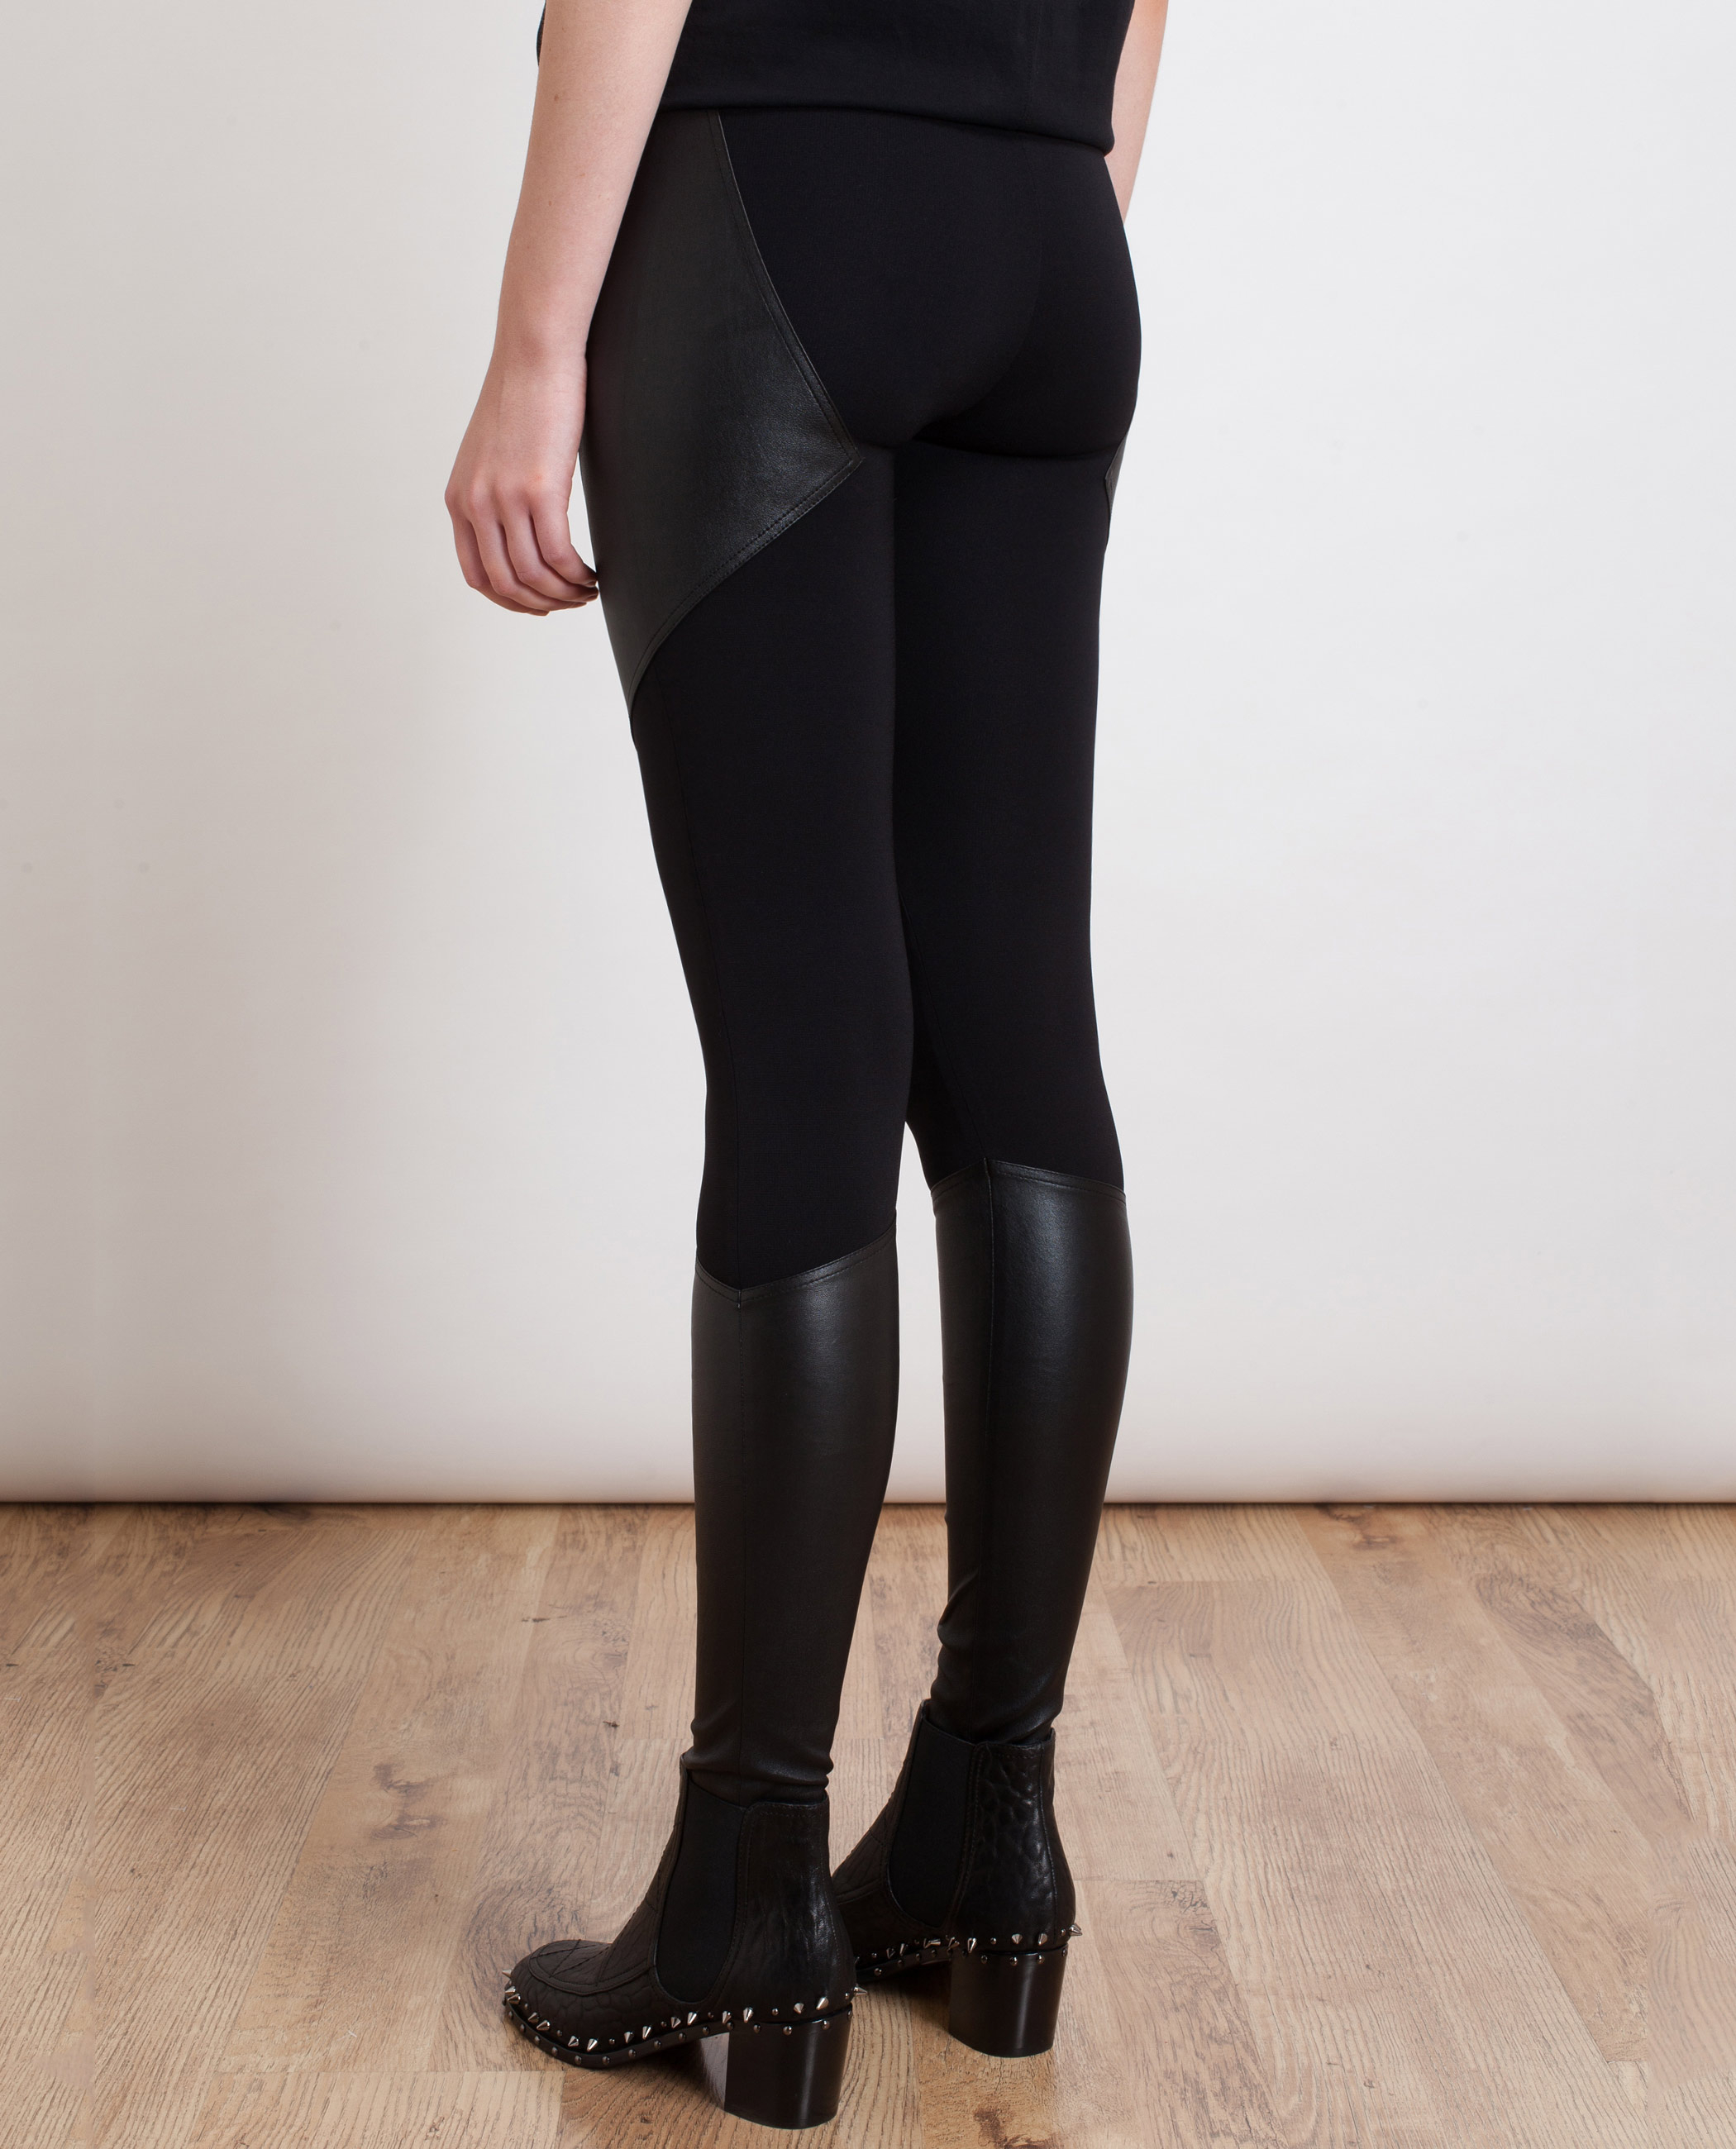 From faux leather and moto to velvet, our fashion leggings give you the comfort of leggings without sacrificing style. Wear them to the office, to dinner, or for a night on the town – you'll fool everyone with your stylish leggings that look like pants.